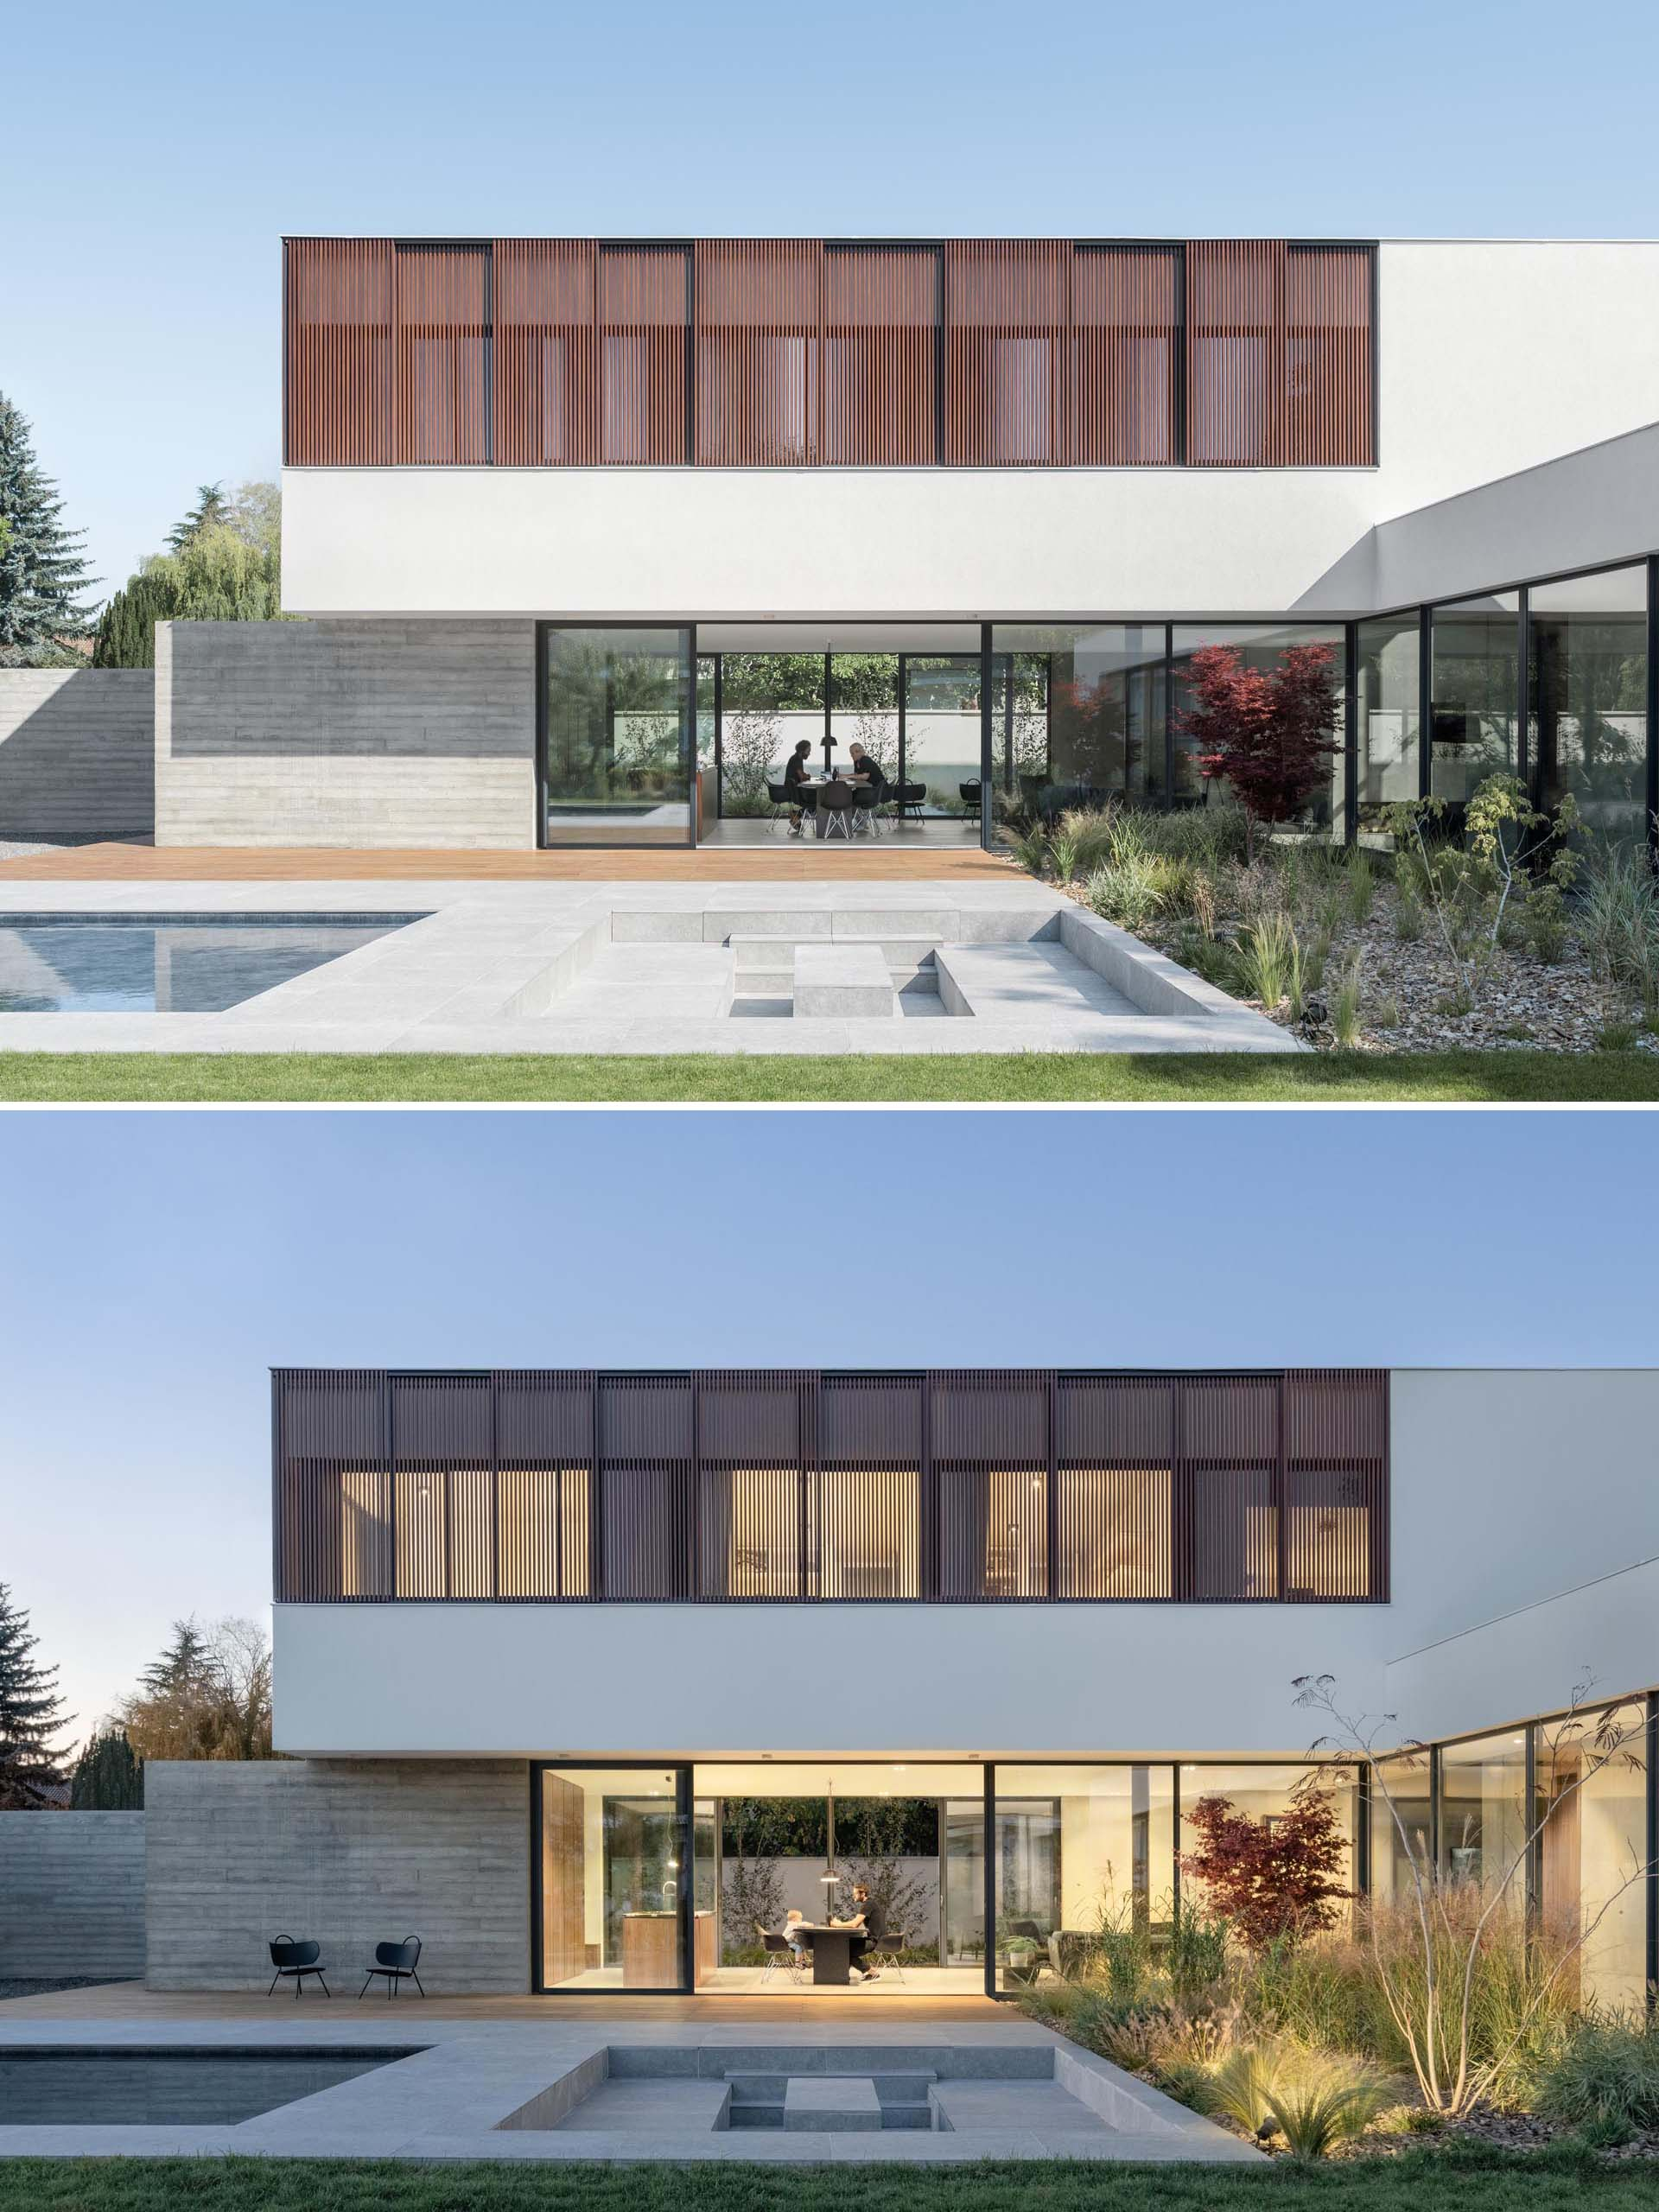 Large sliding glass windows transforming the living room into a huge terrace opening onto a green space, erasing the separation between inside and outside.